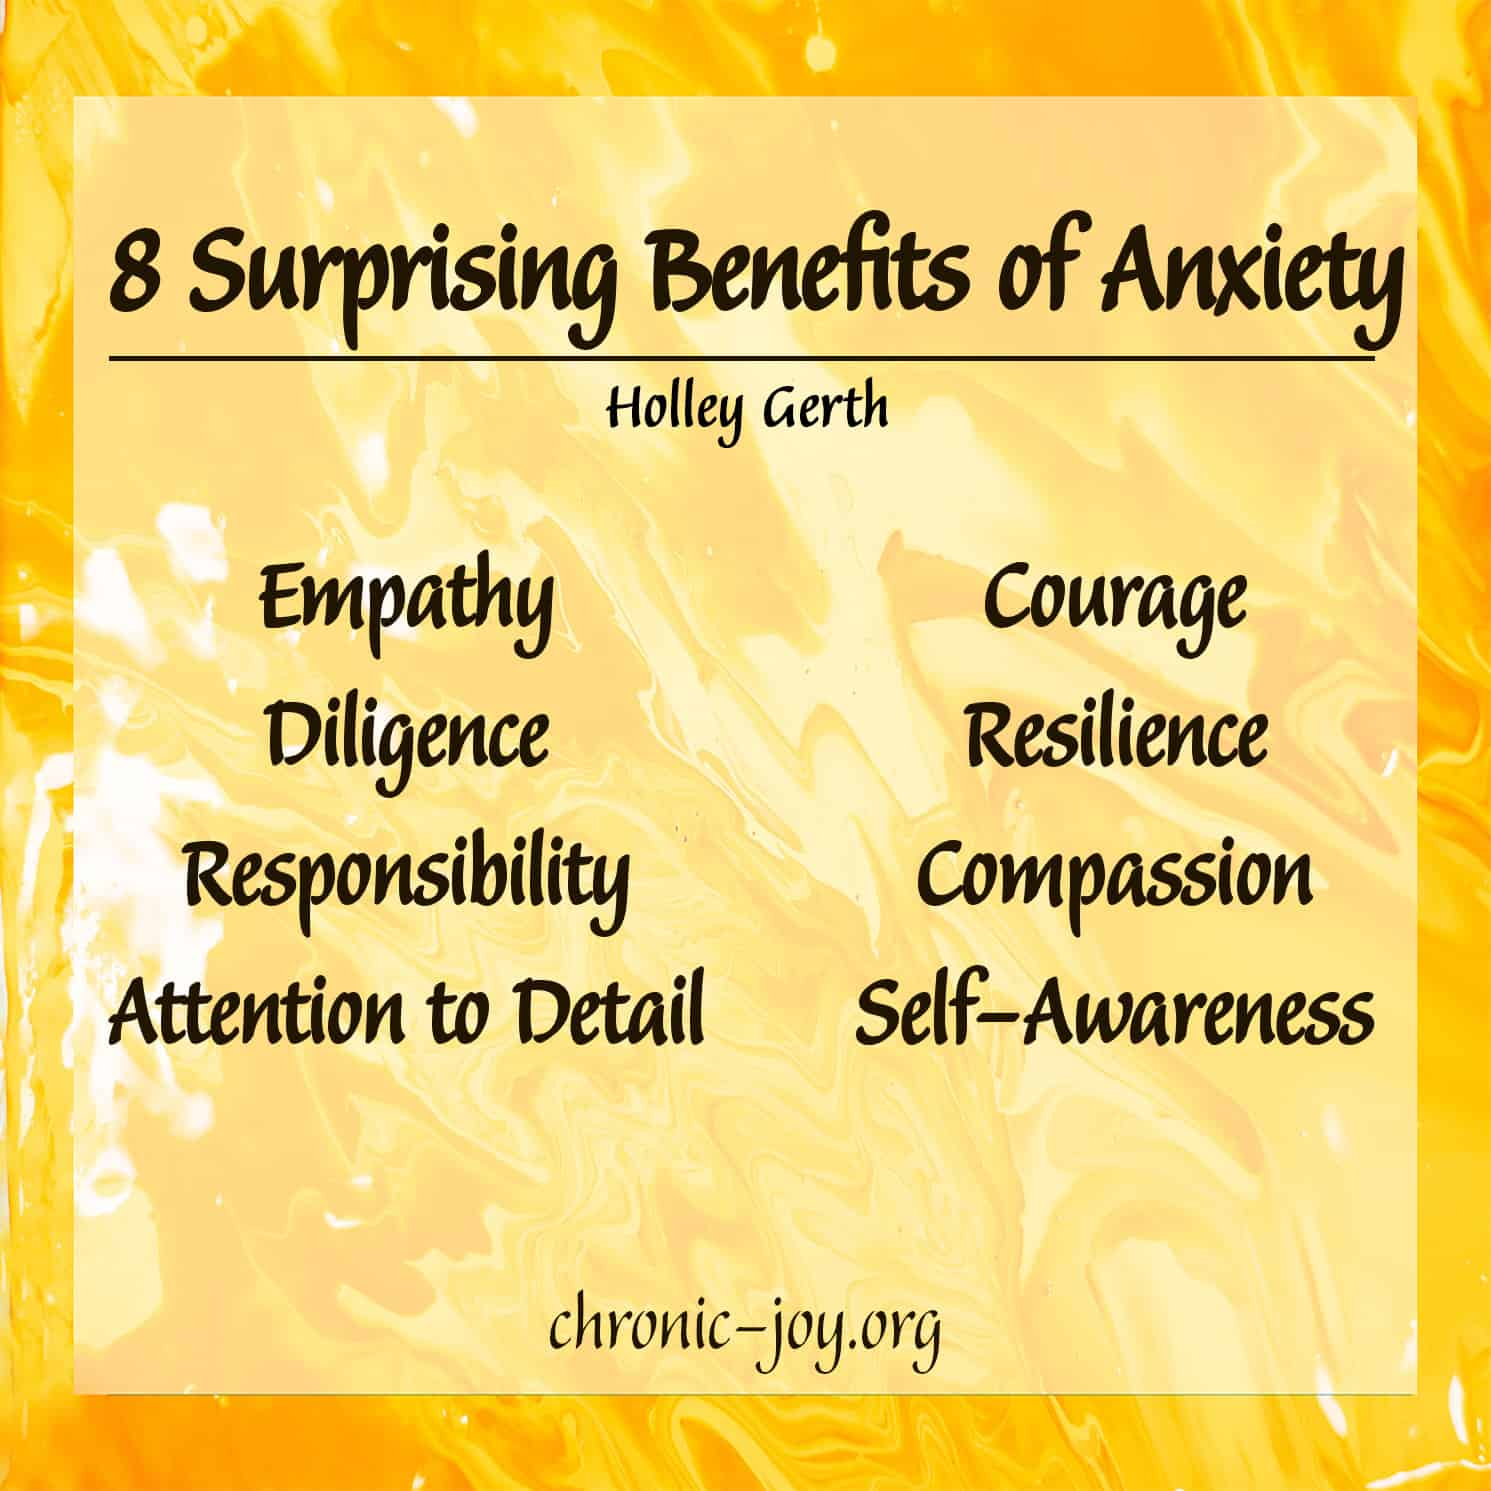 8 Surprising Benefits of Anxiety